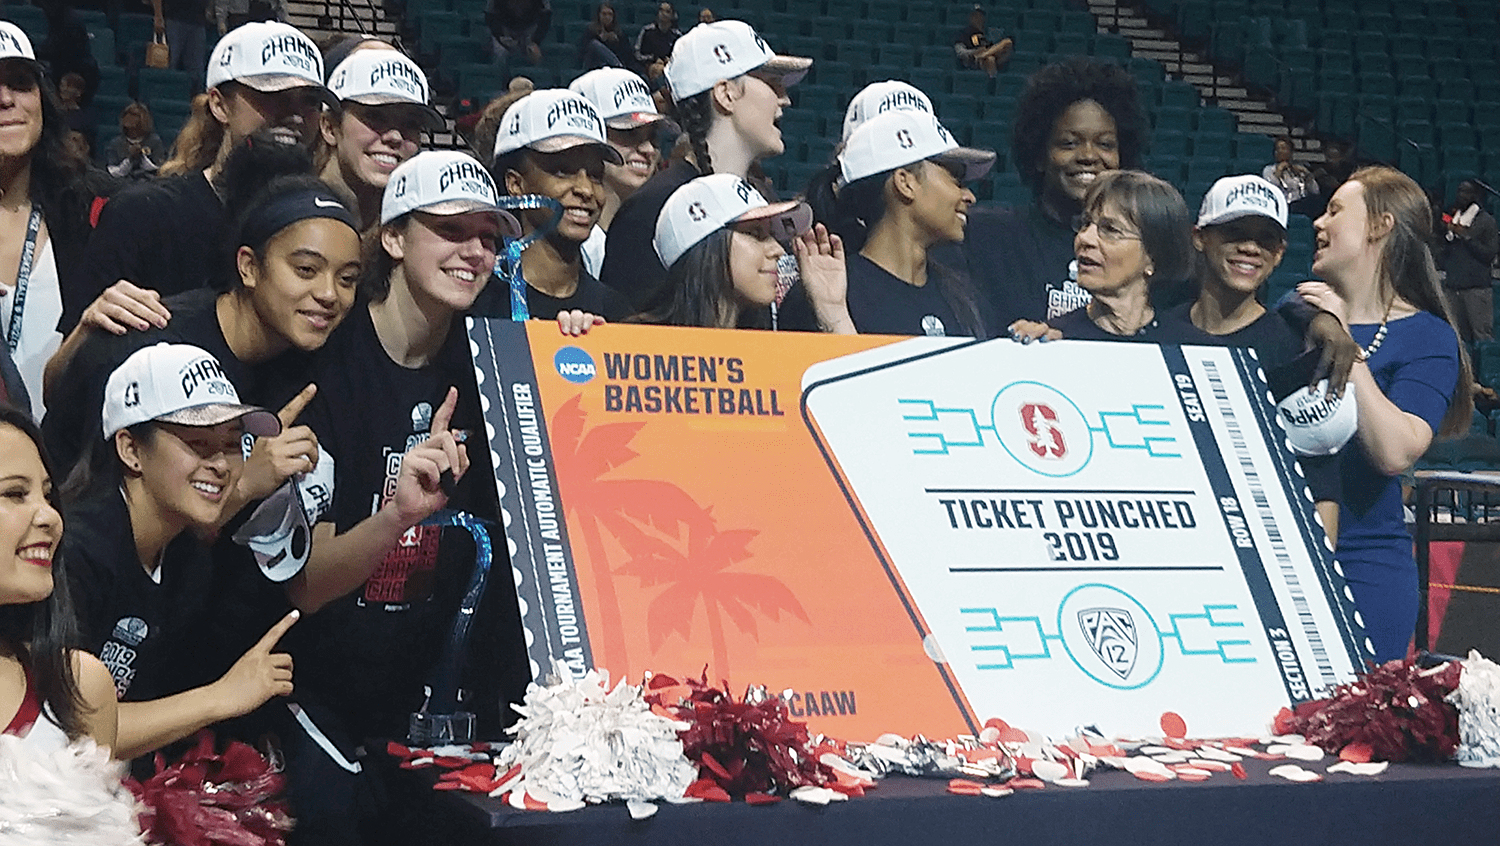 Cardinal payback: Stanford avenges regular season loss to Oregon with conference tournament title